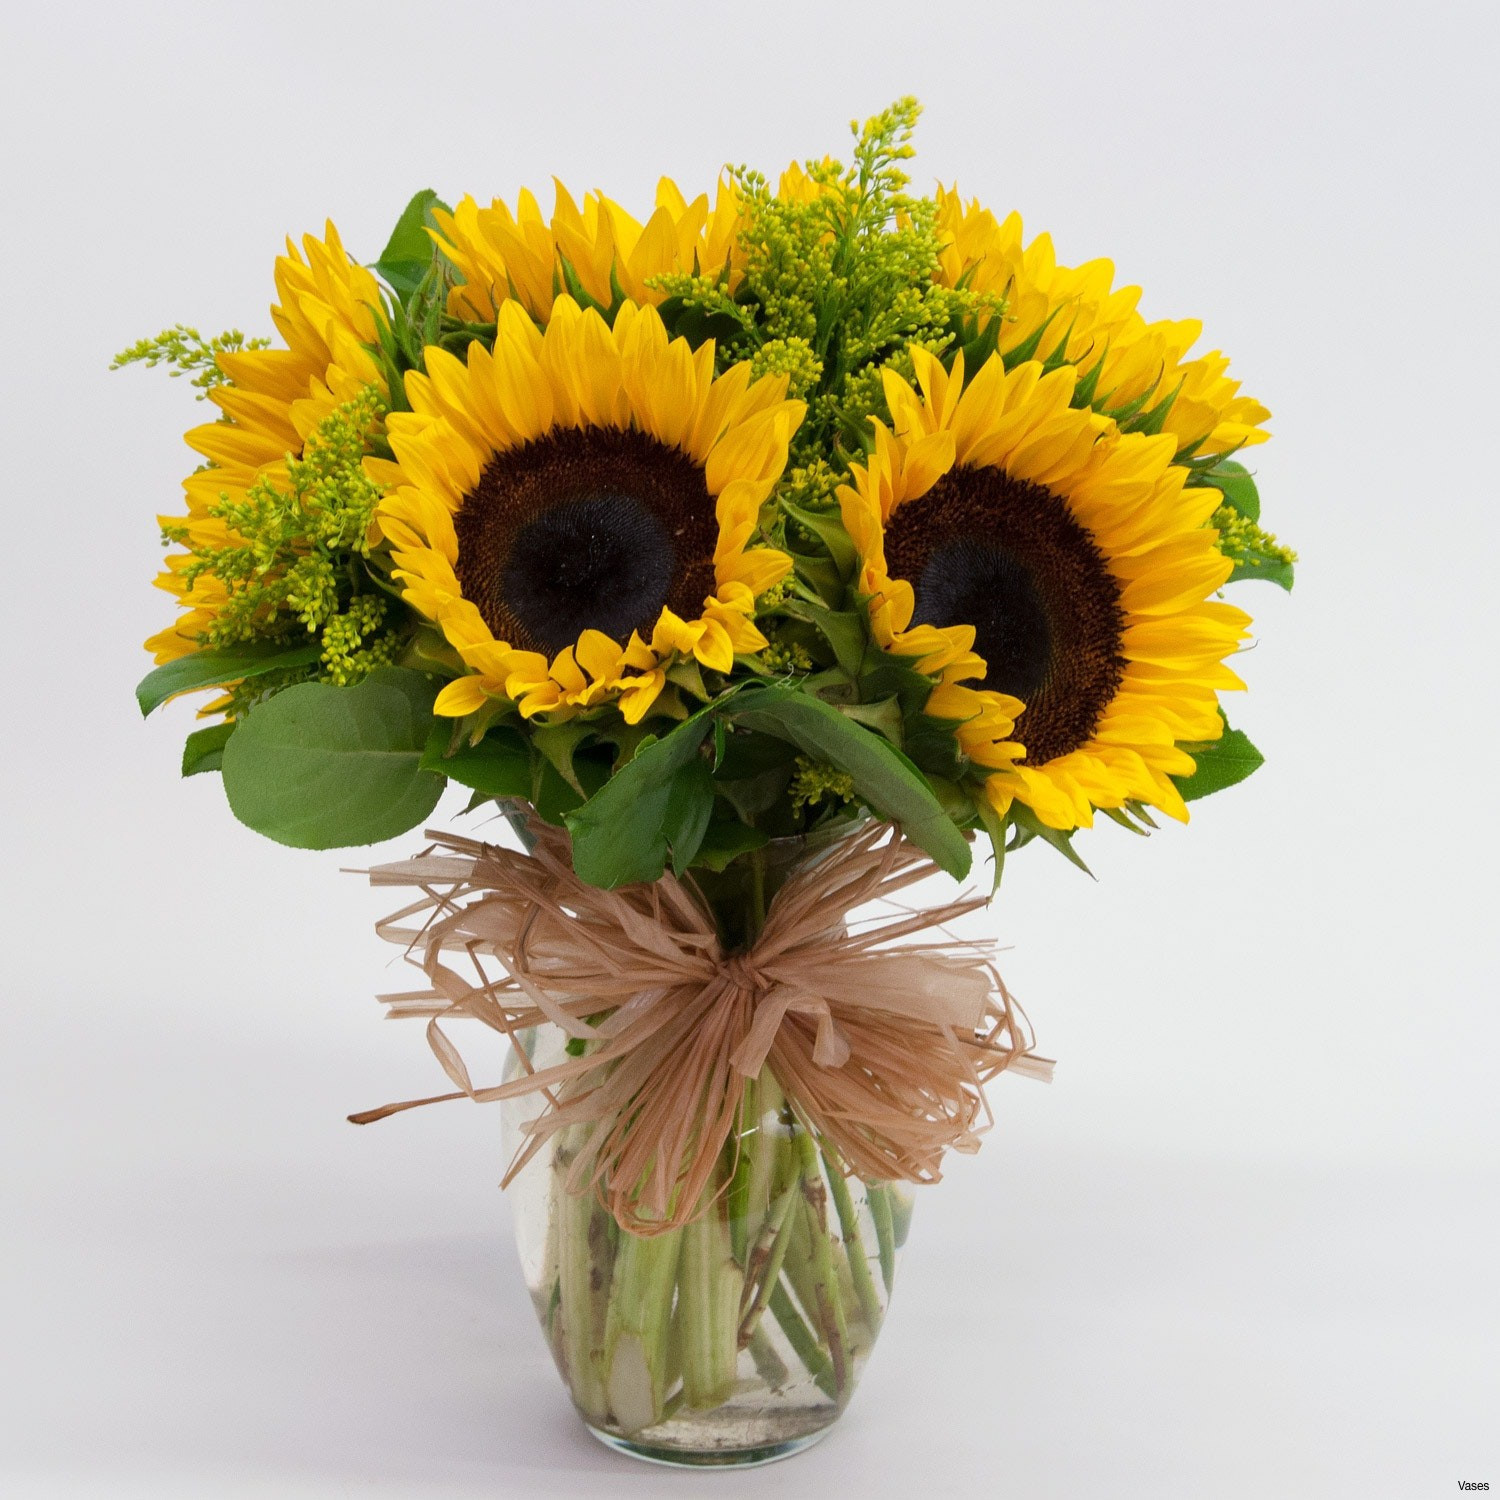 mason jar flower vase ideas of rustic bridal shower decorations wedding fresh summer sunflower pertaining to rustic bridal shower decorations wedding fresh summer sunflower vaseh vases sunfl